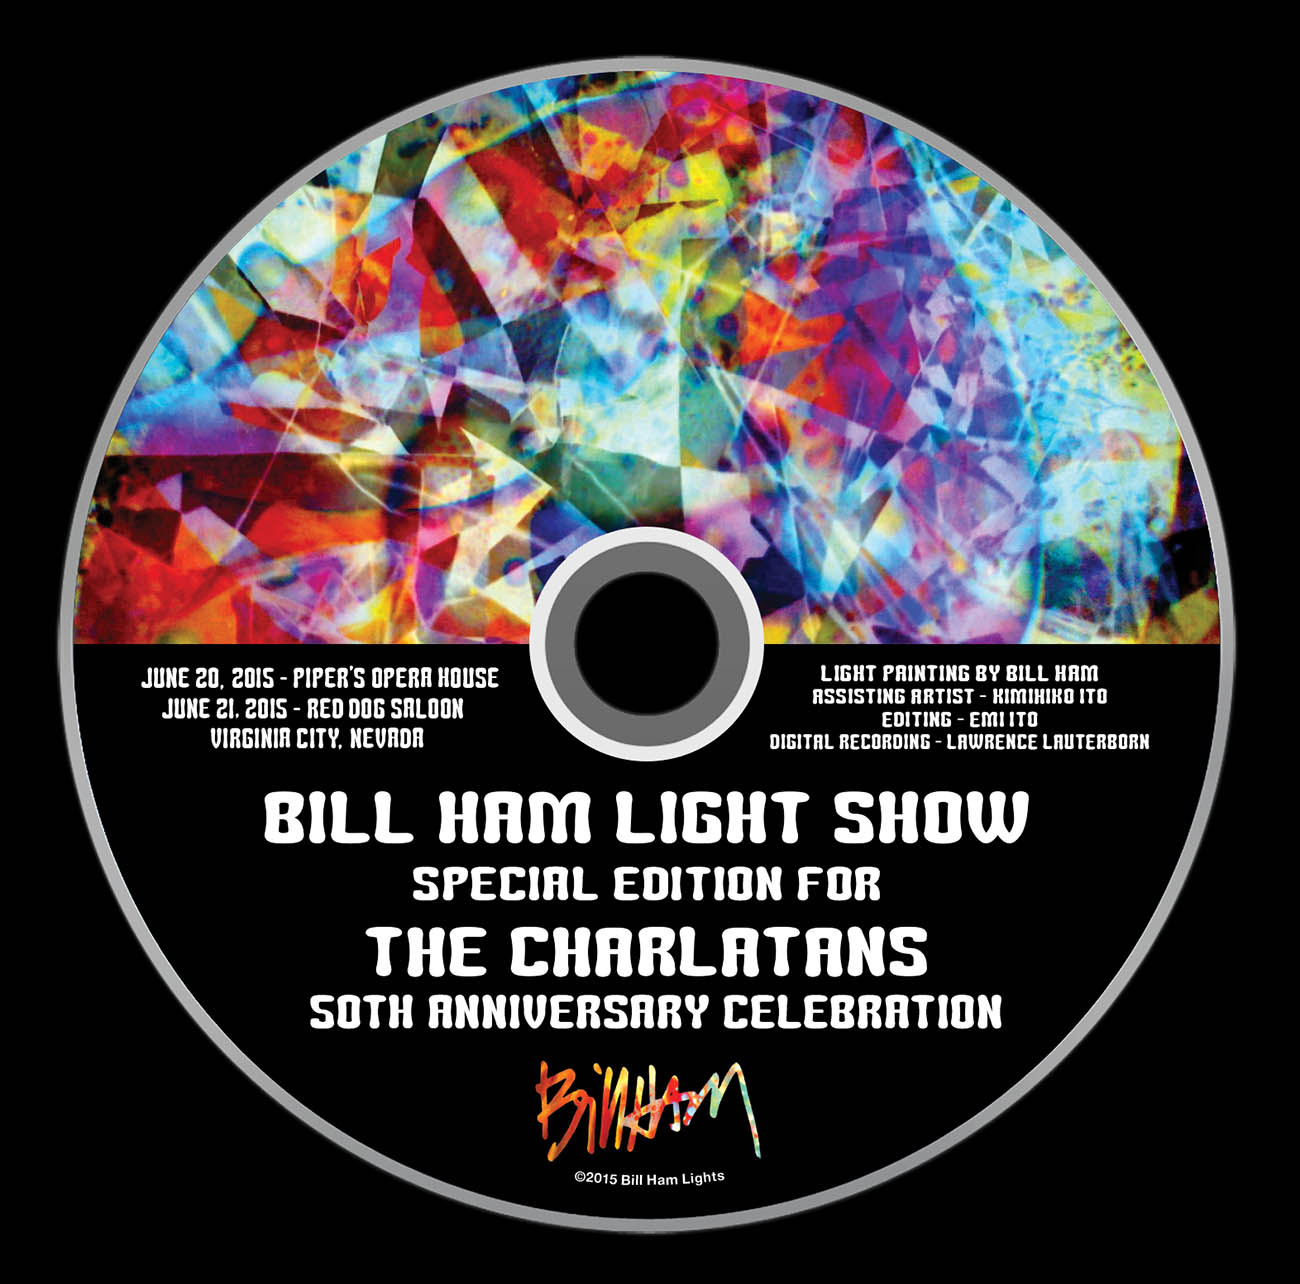 The Charlatan's 50th Anniversary DVD, June 16, 2015